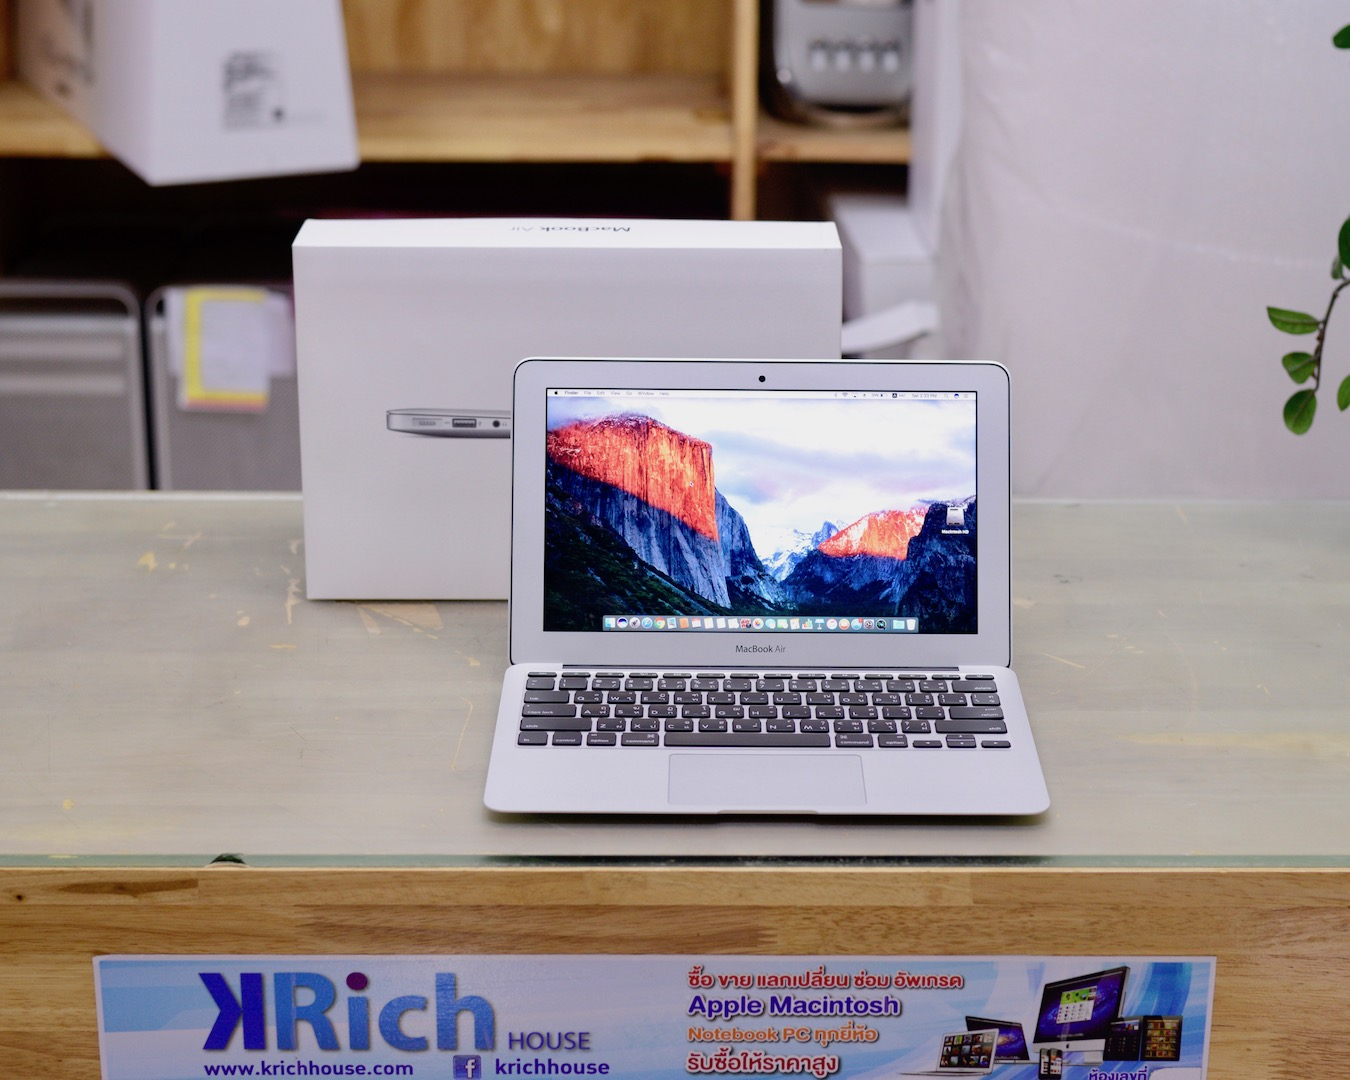 MacBook Air (11-inch, Mid 2013) Core i5 1.3GHz RAM 4GB SSD 256GB - Fullbox